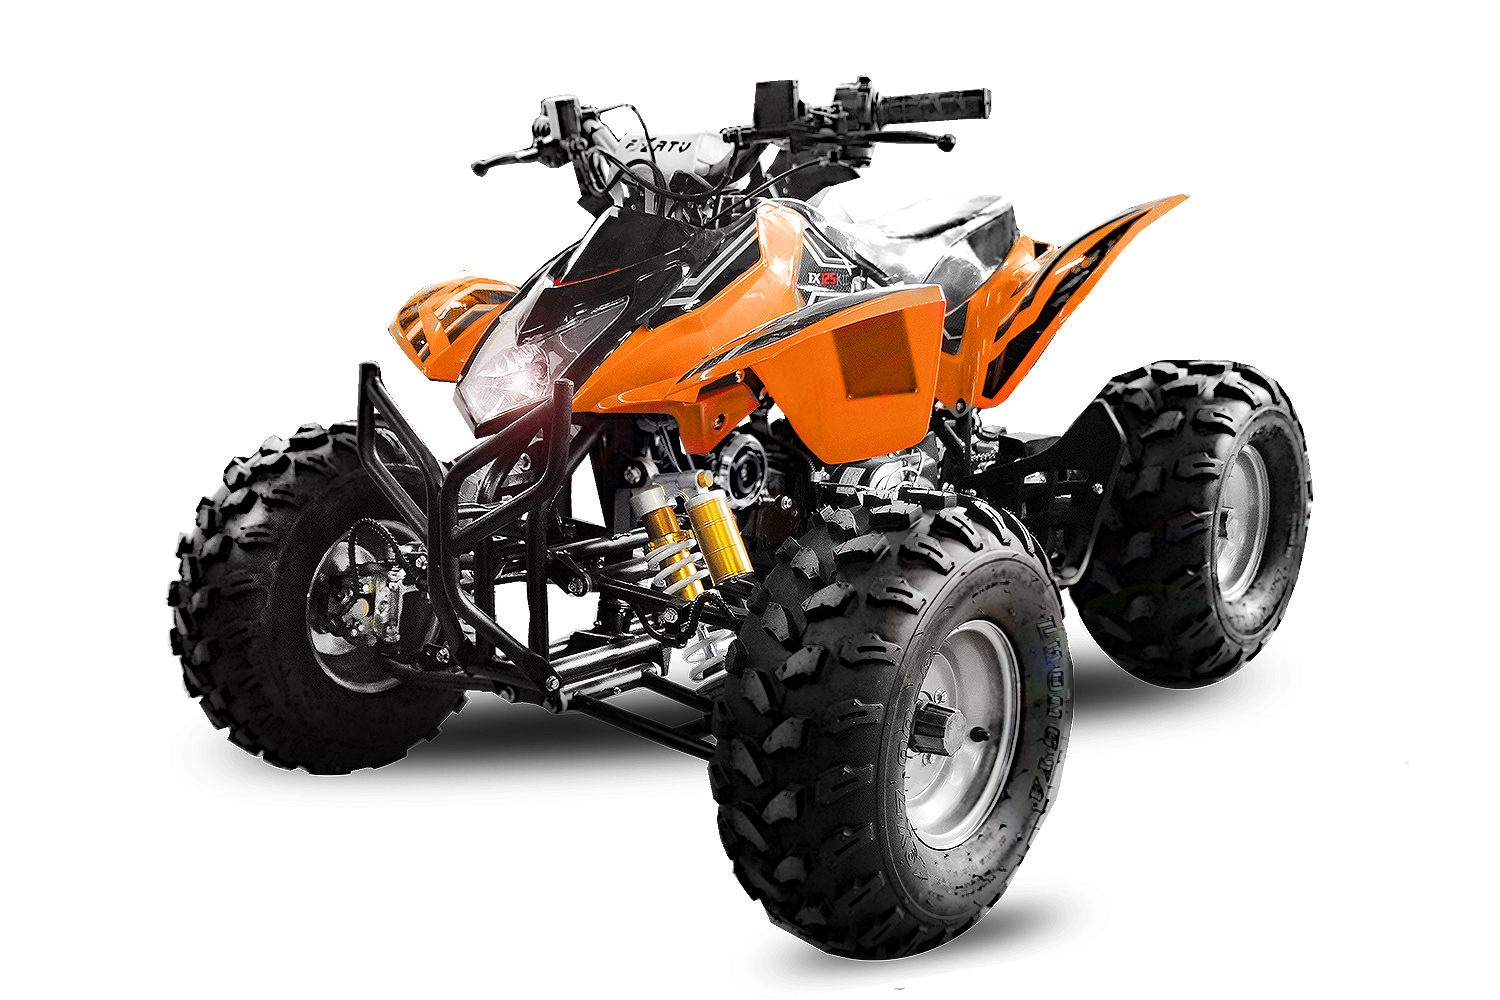 quad 125cc 8 zoll 3 gang r ckwertsgnag motocross kindermotorrad pit dirt bike quad ersatzteile. Black Bedroom Furniture Sets. Home Design Ideas